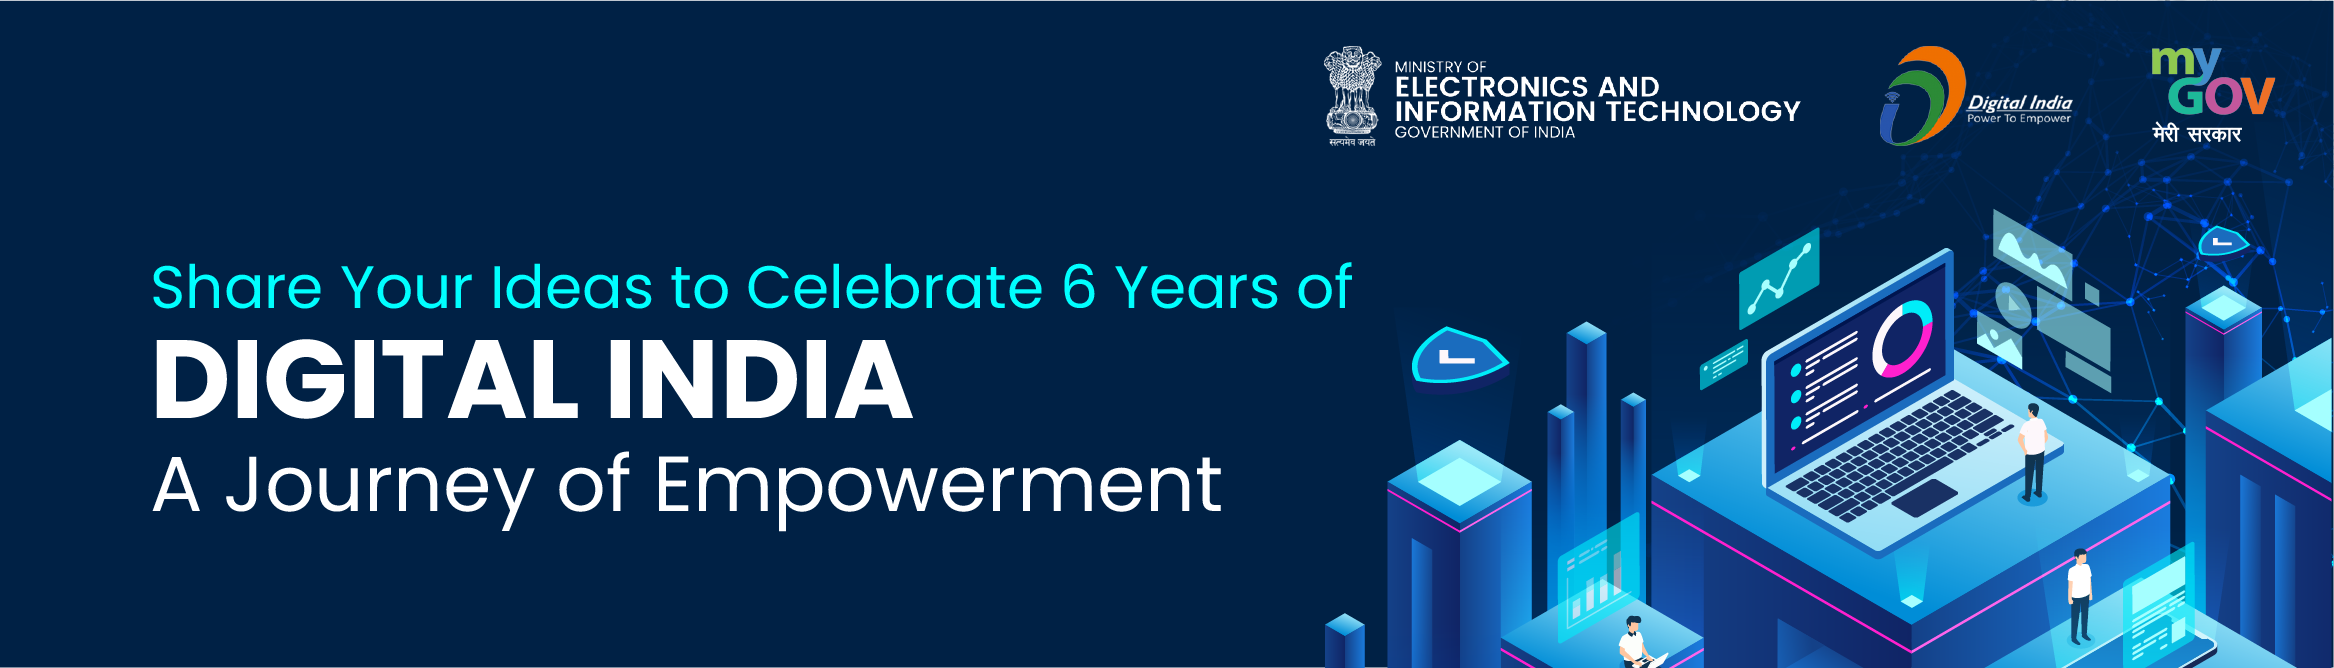 Share Your Ideas to Celebrate 6 Years of DIGITAL INDIA, A Journey of Empowerment